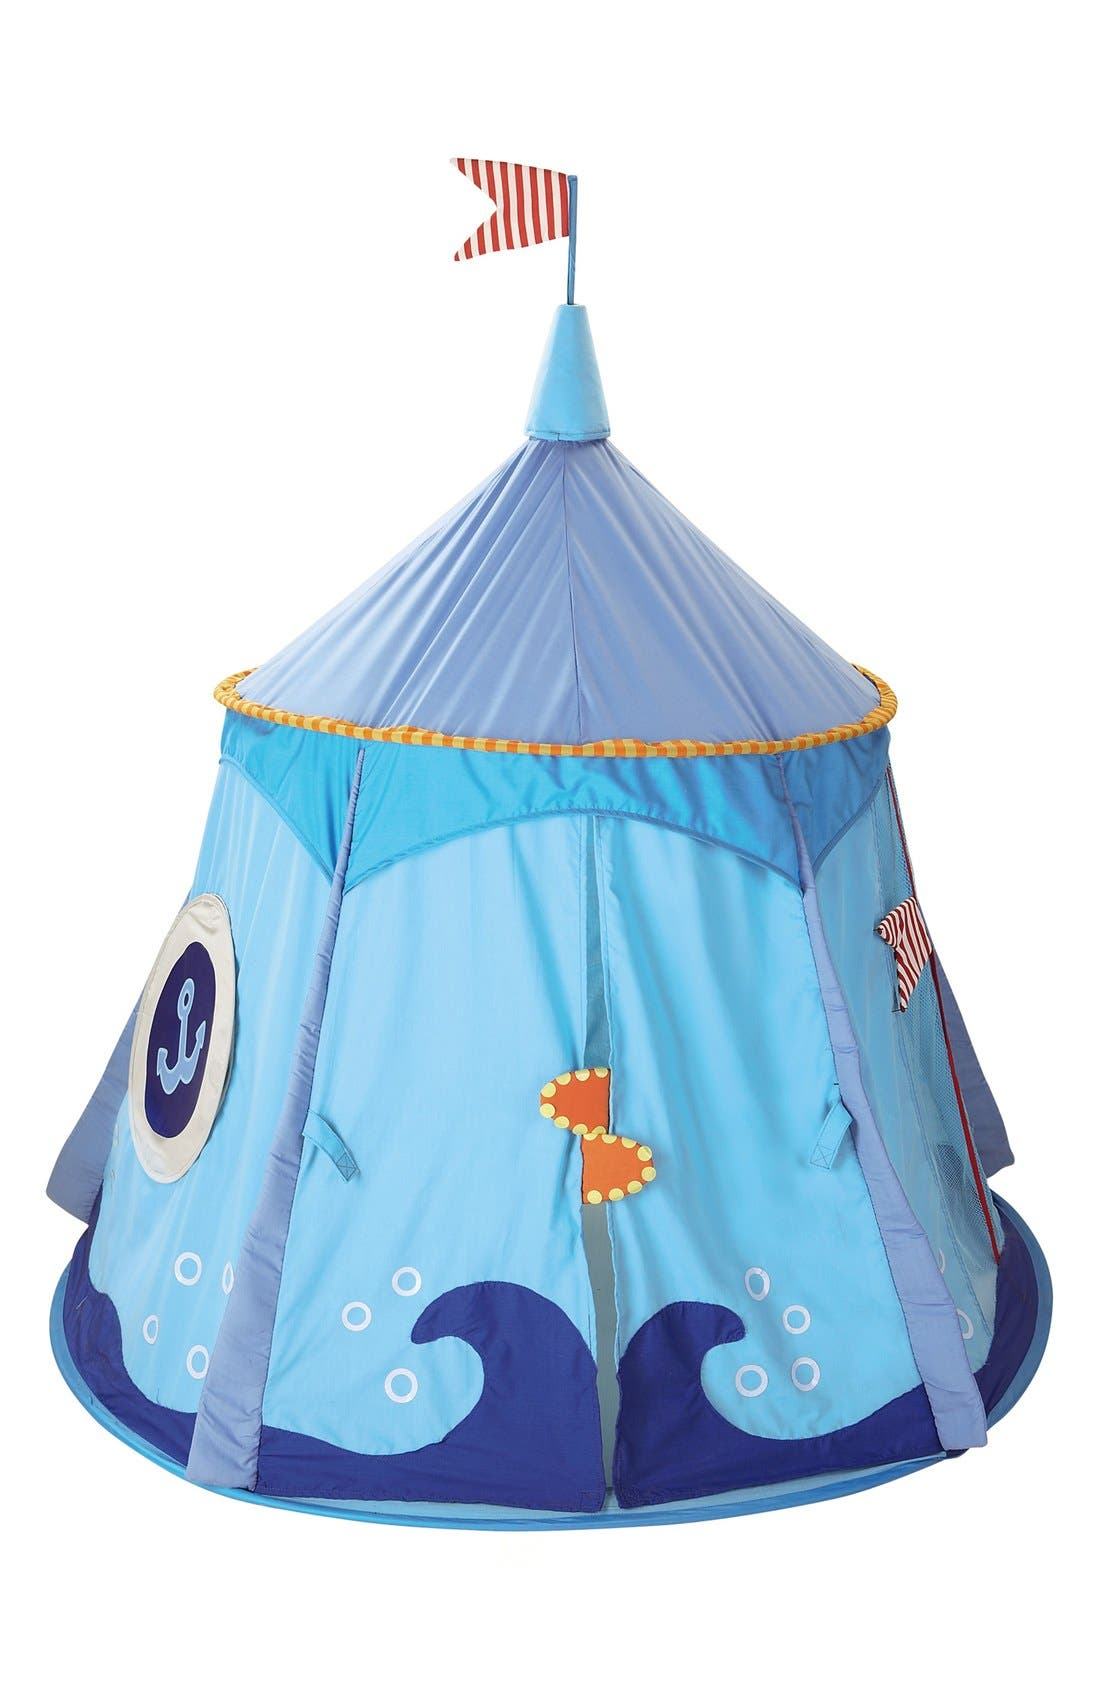 'Pirate's Treasure' Play Tent,                             Alternate thumbnail 2, color,                             BLUE